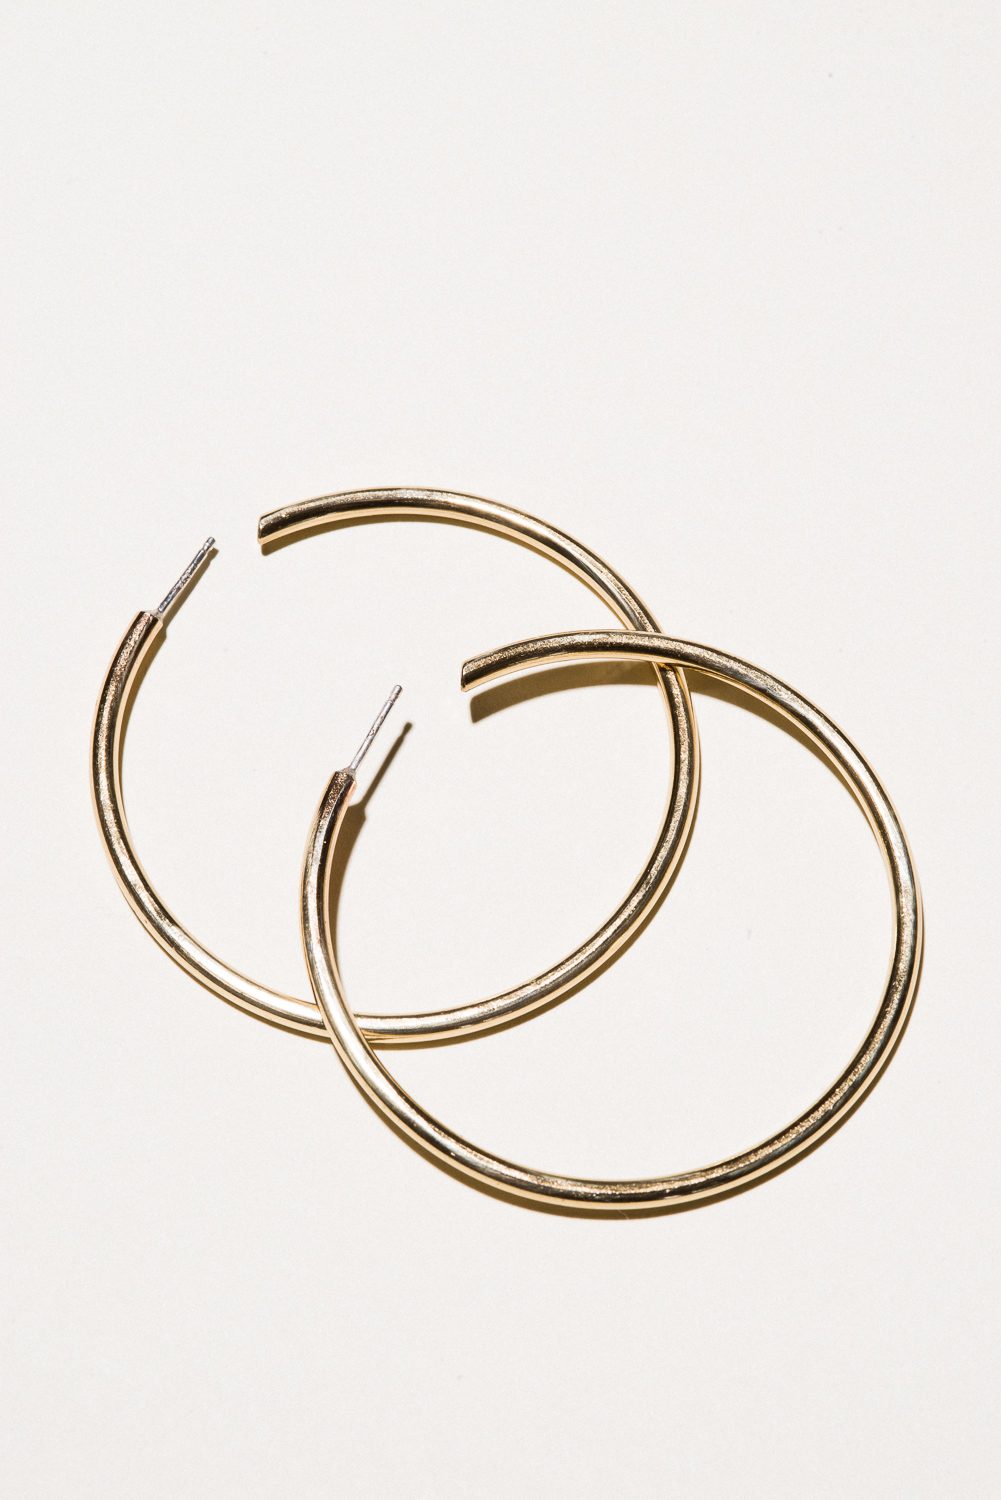 XL Brass Classic Hoops - 2.2 in diameterJewelers Brass, Lacquer FinishHand Smithed$70